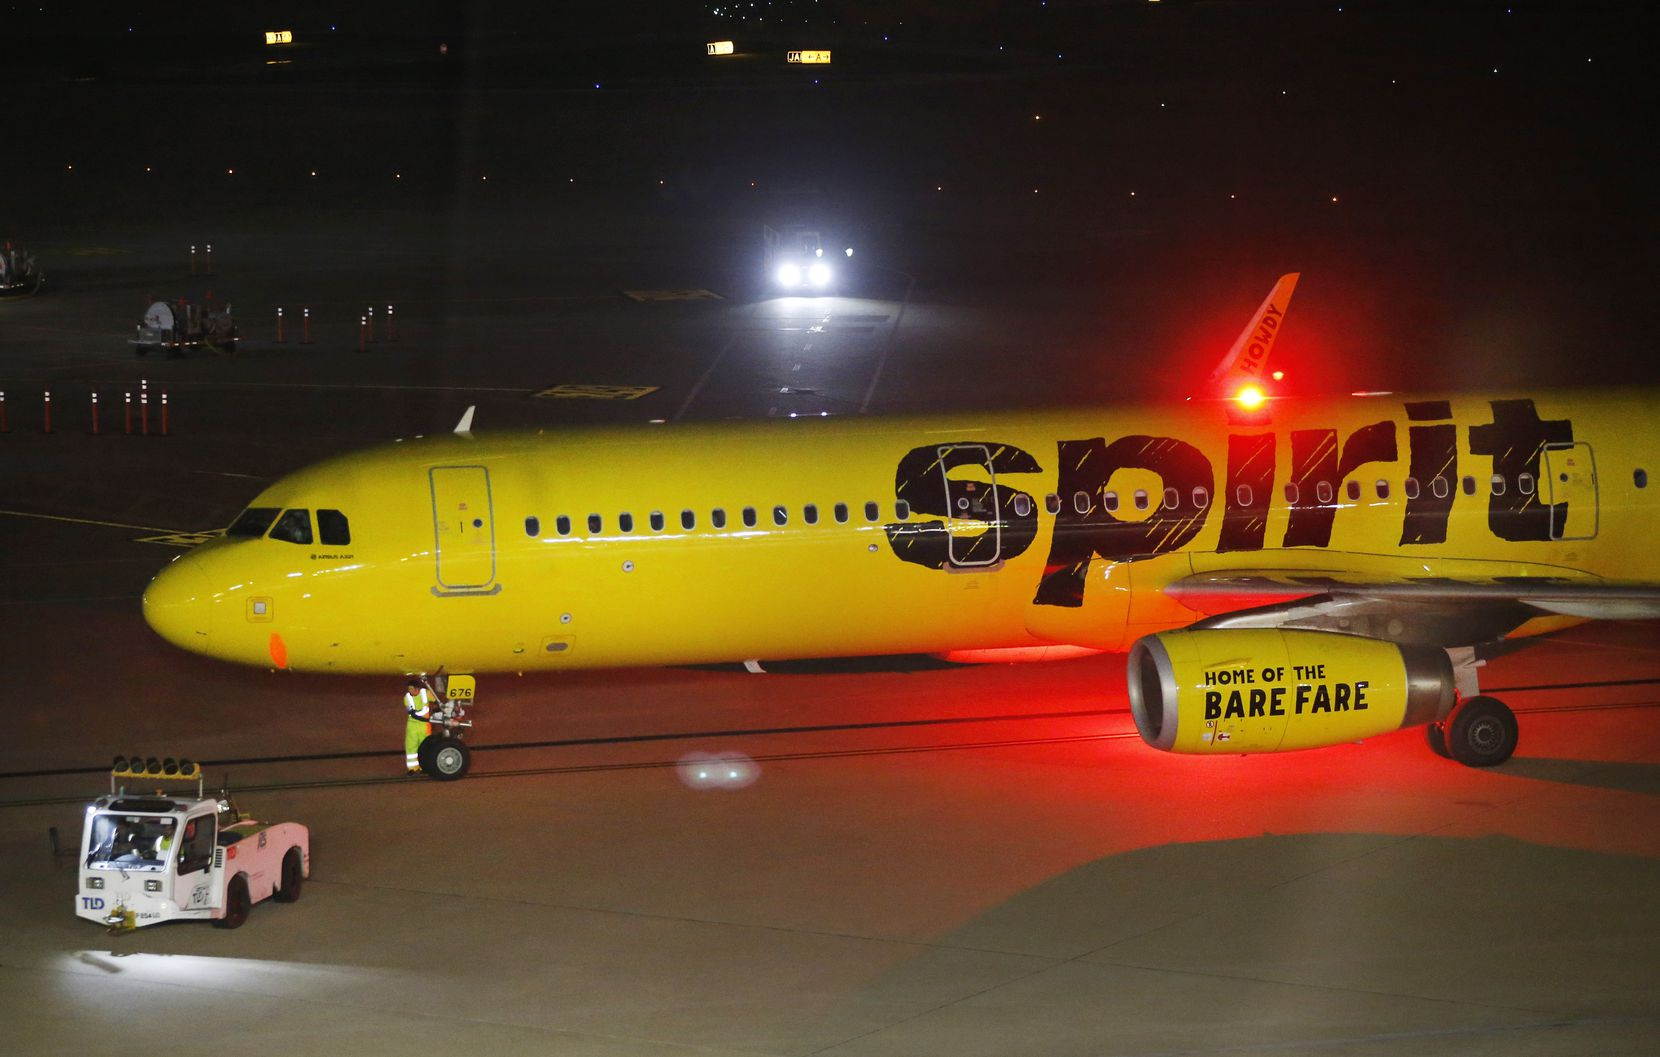 Ground crew workers ready a Spirit Airlines jet for takeoff at DFW International Airport, Wednesday evening, May 8, 2019.